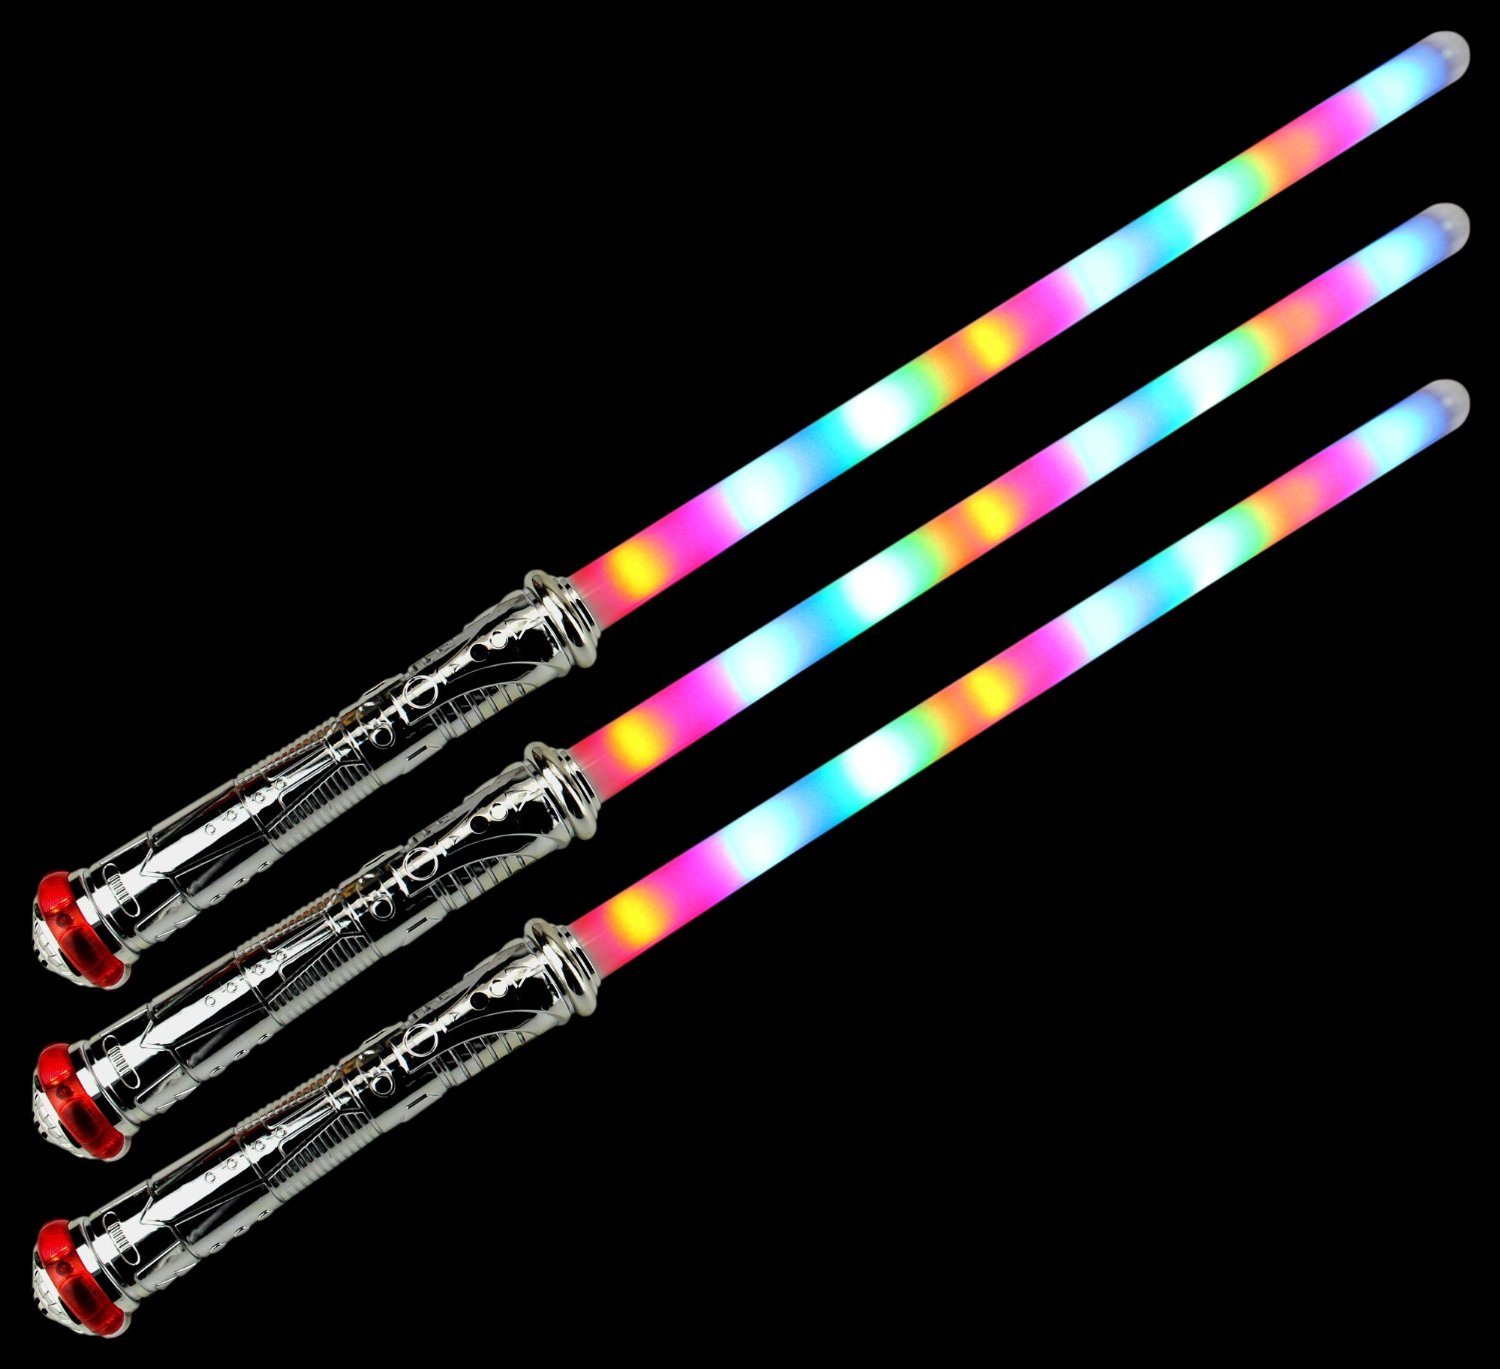 Set of 3 VT Space Captian Flashing LED Light Up & Sound Party Favor Toy Light Sword Sabers (Colors May Vary)